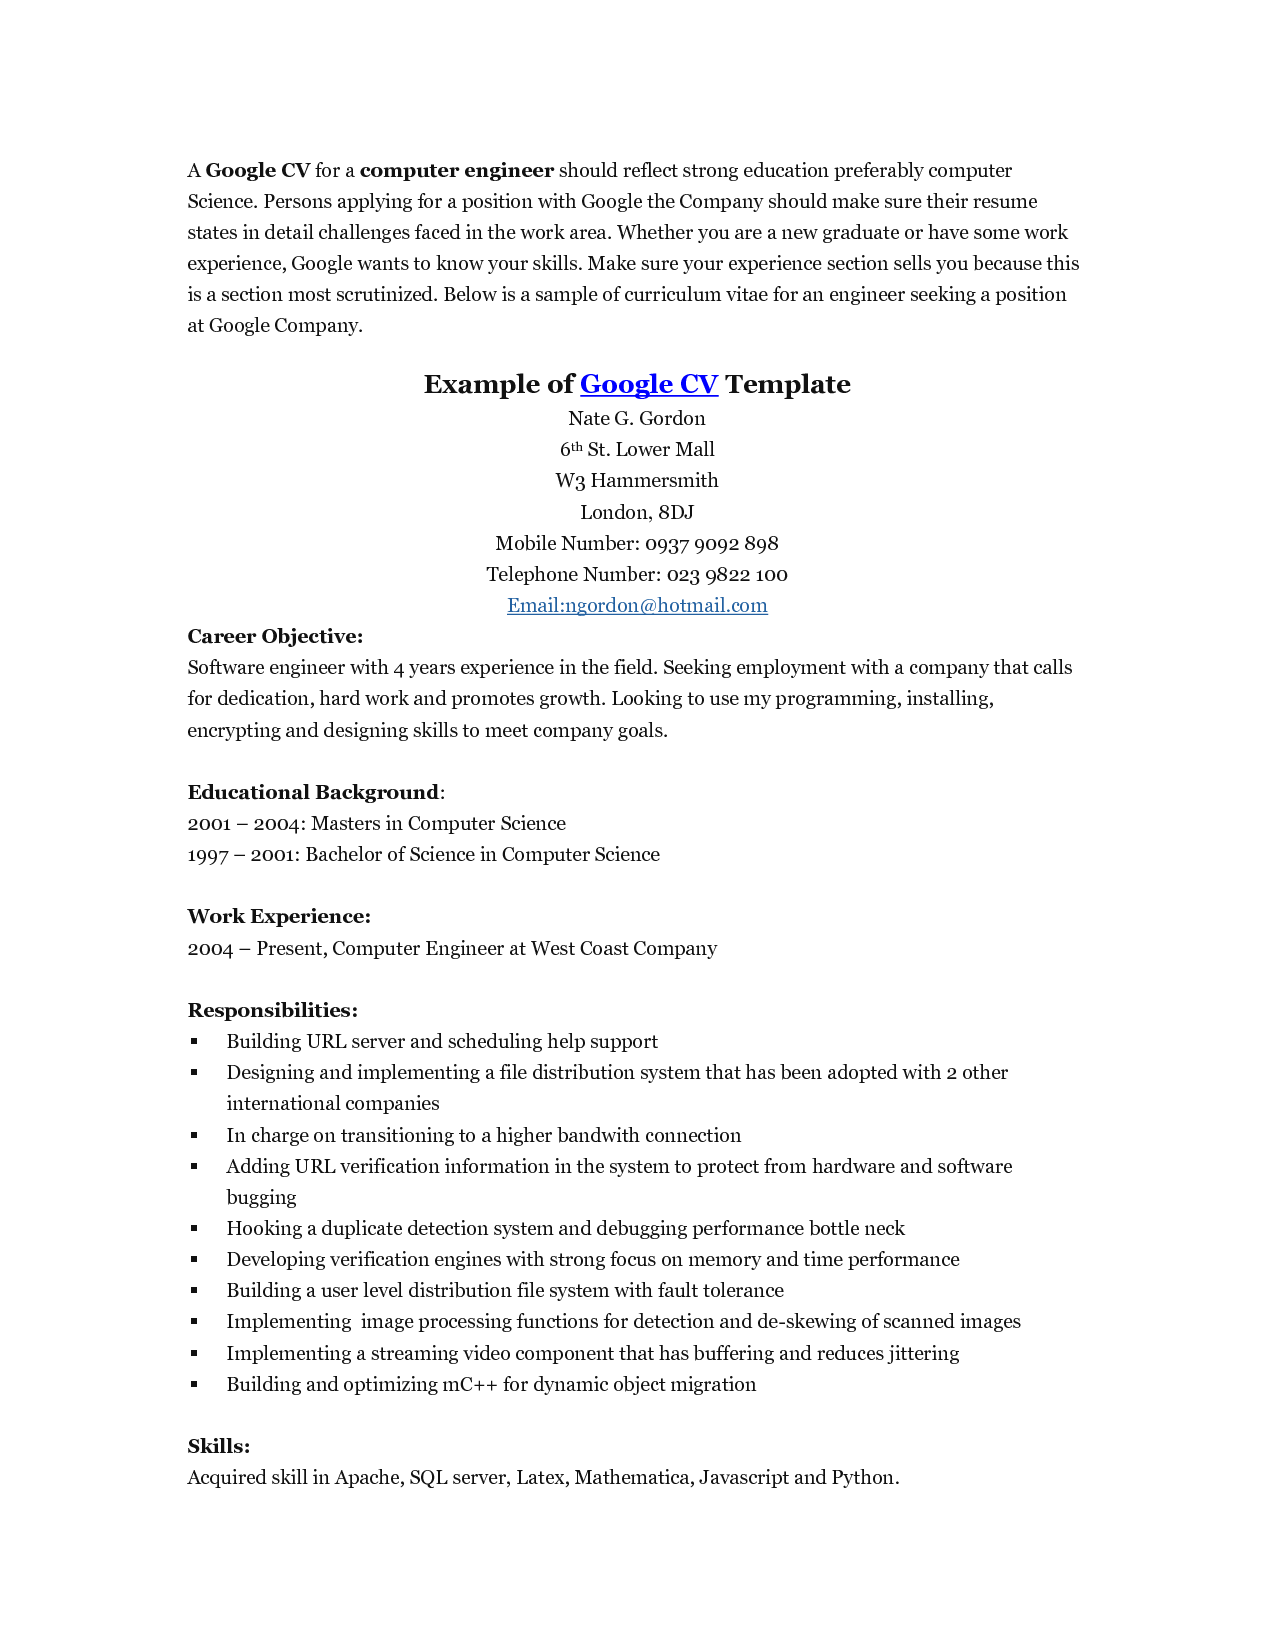 Google Templates Resume Google Templates Resume 2015  Httpwww.jobresume.websitegoogle .